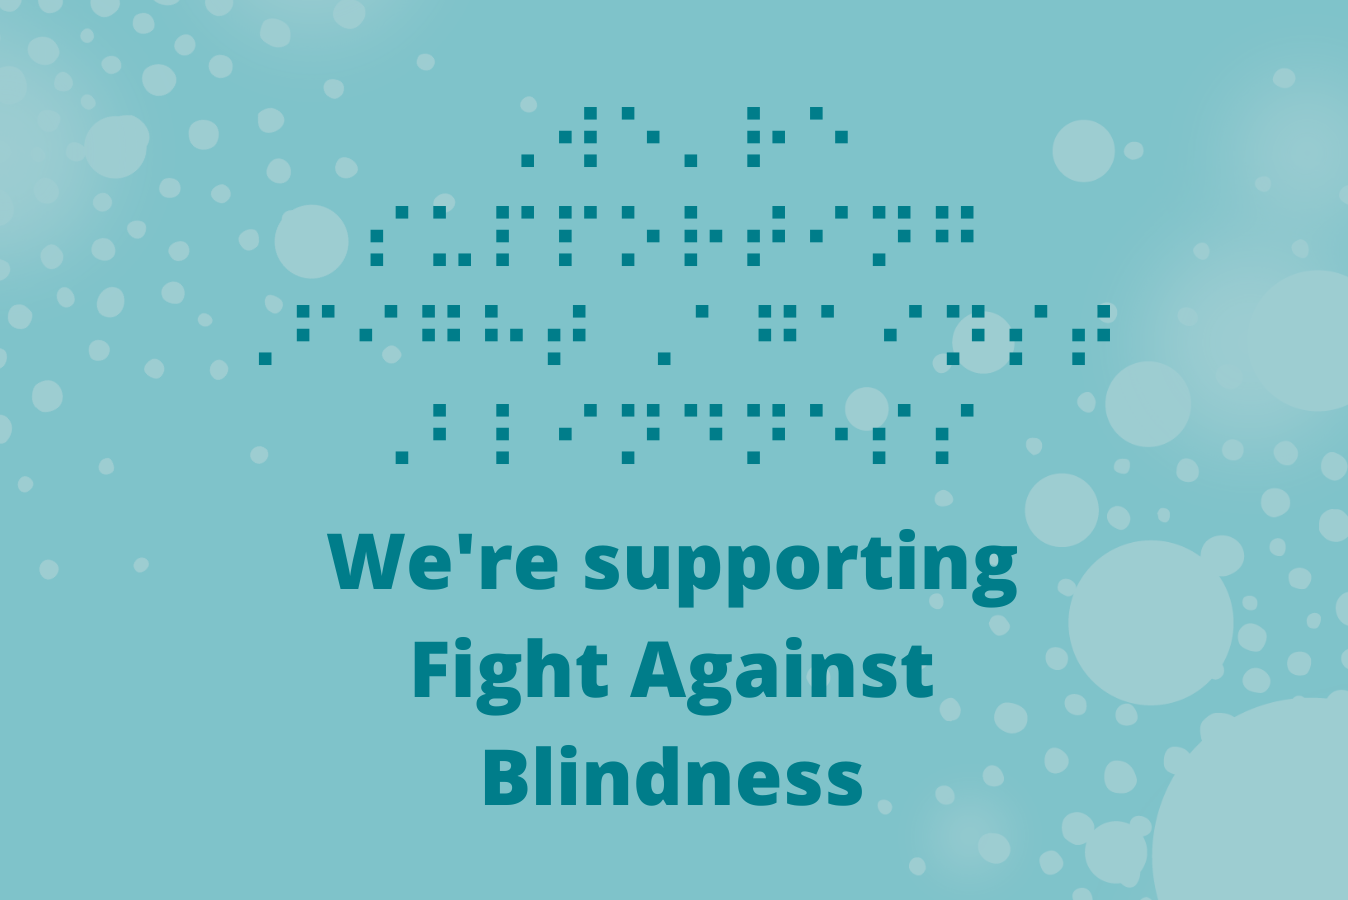 Supporting Fight Against Blindness